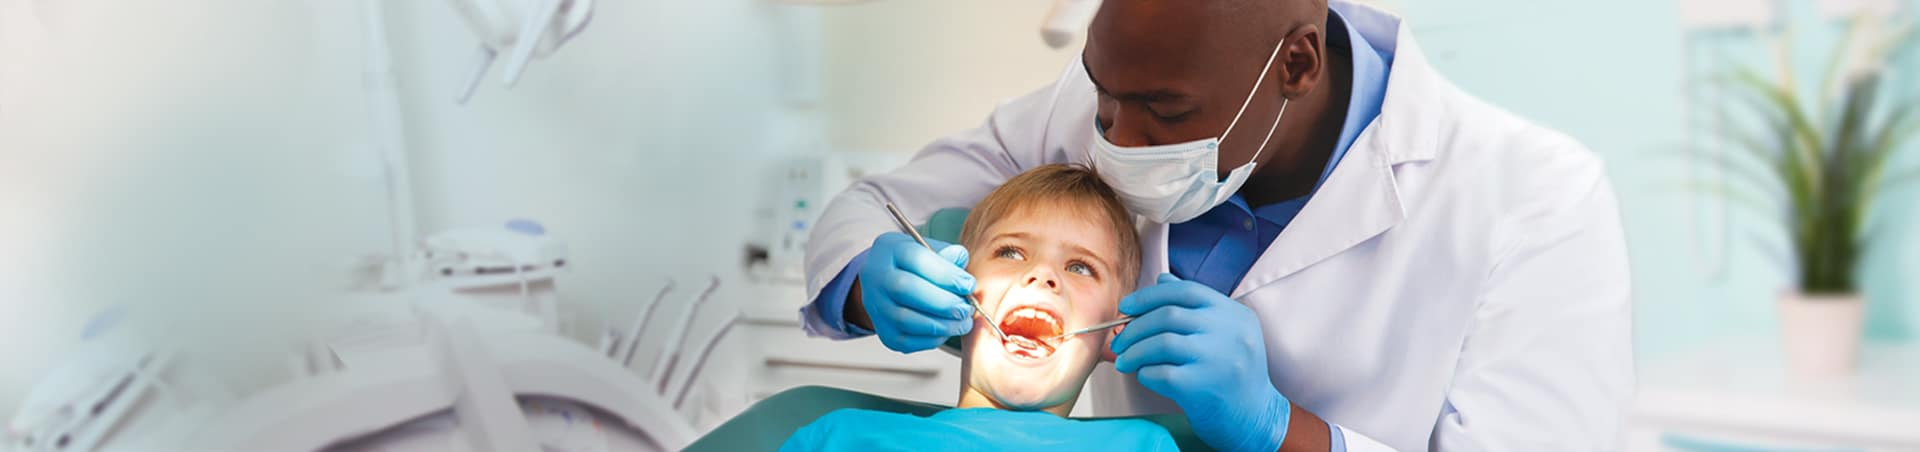 affordable medical aid cover and hospital plans with dental benefits